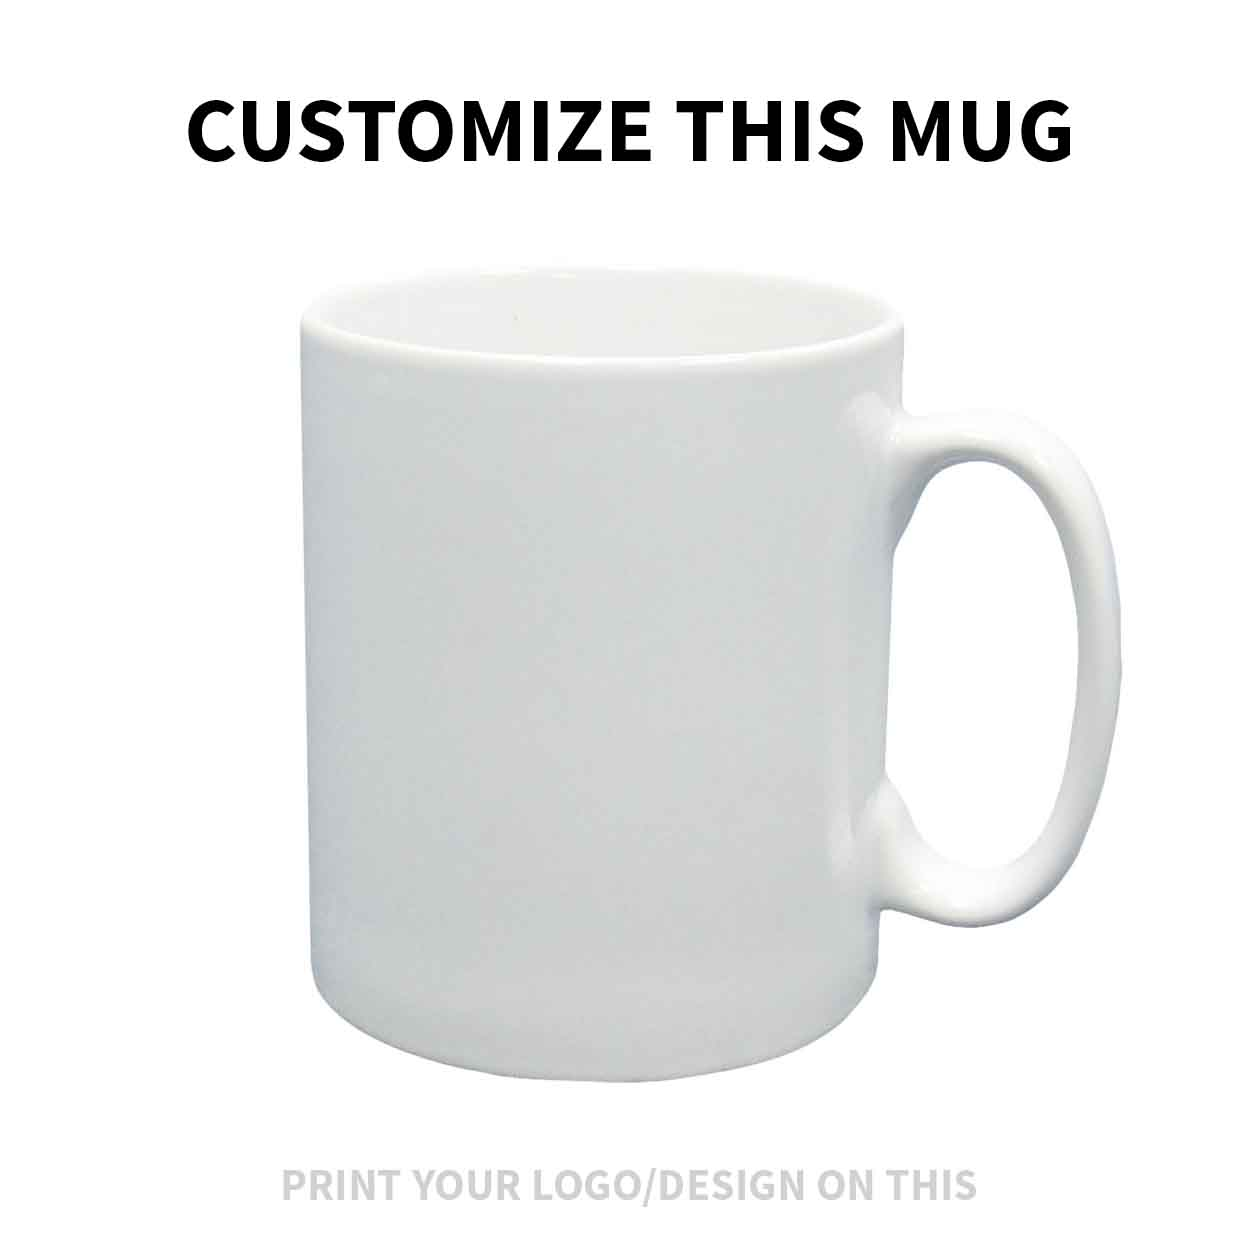 mug printing in sri lanka